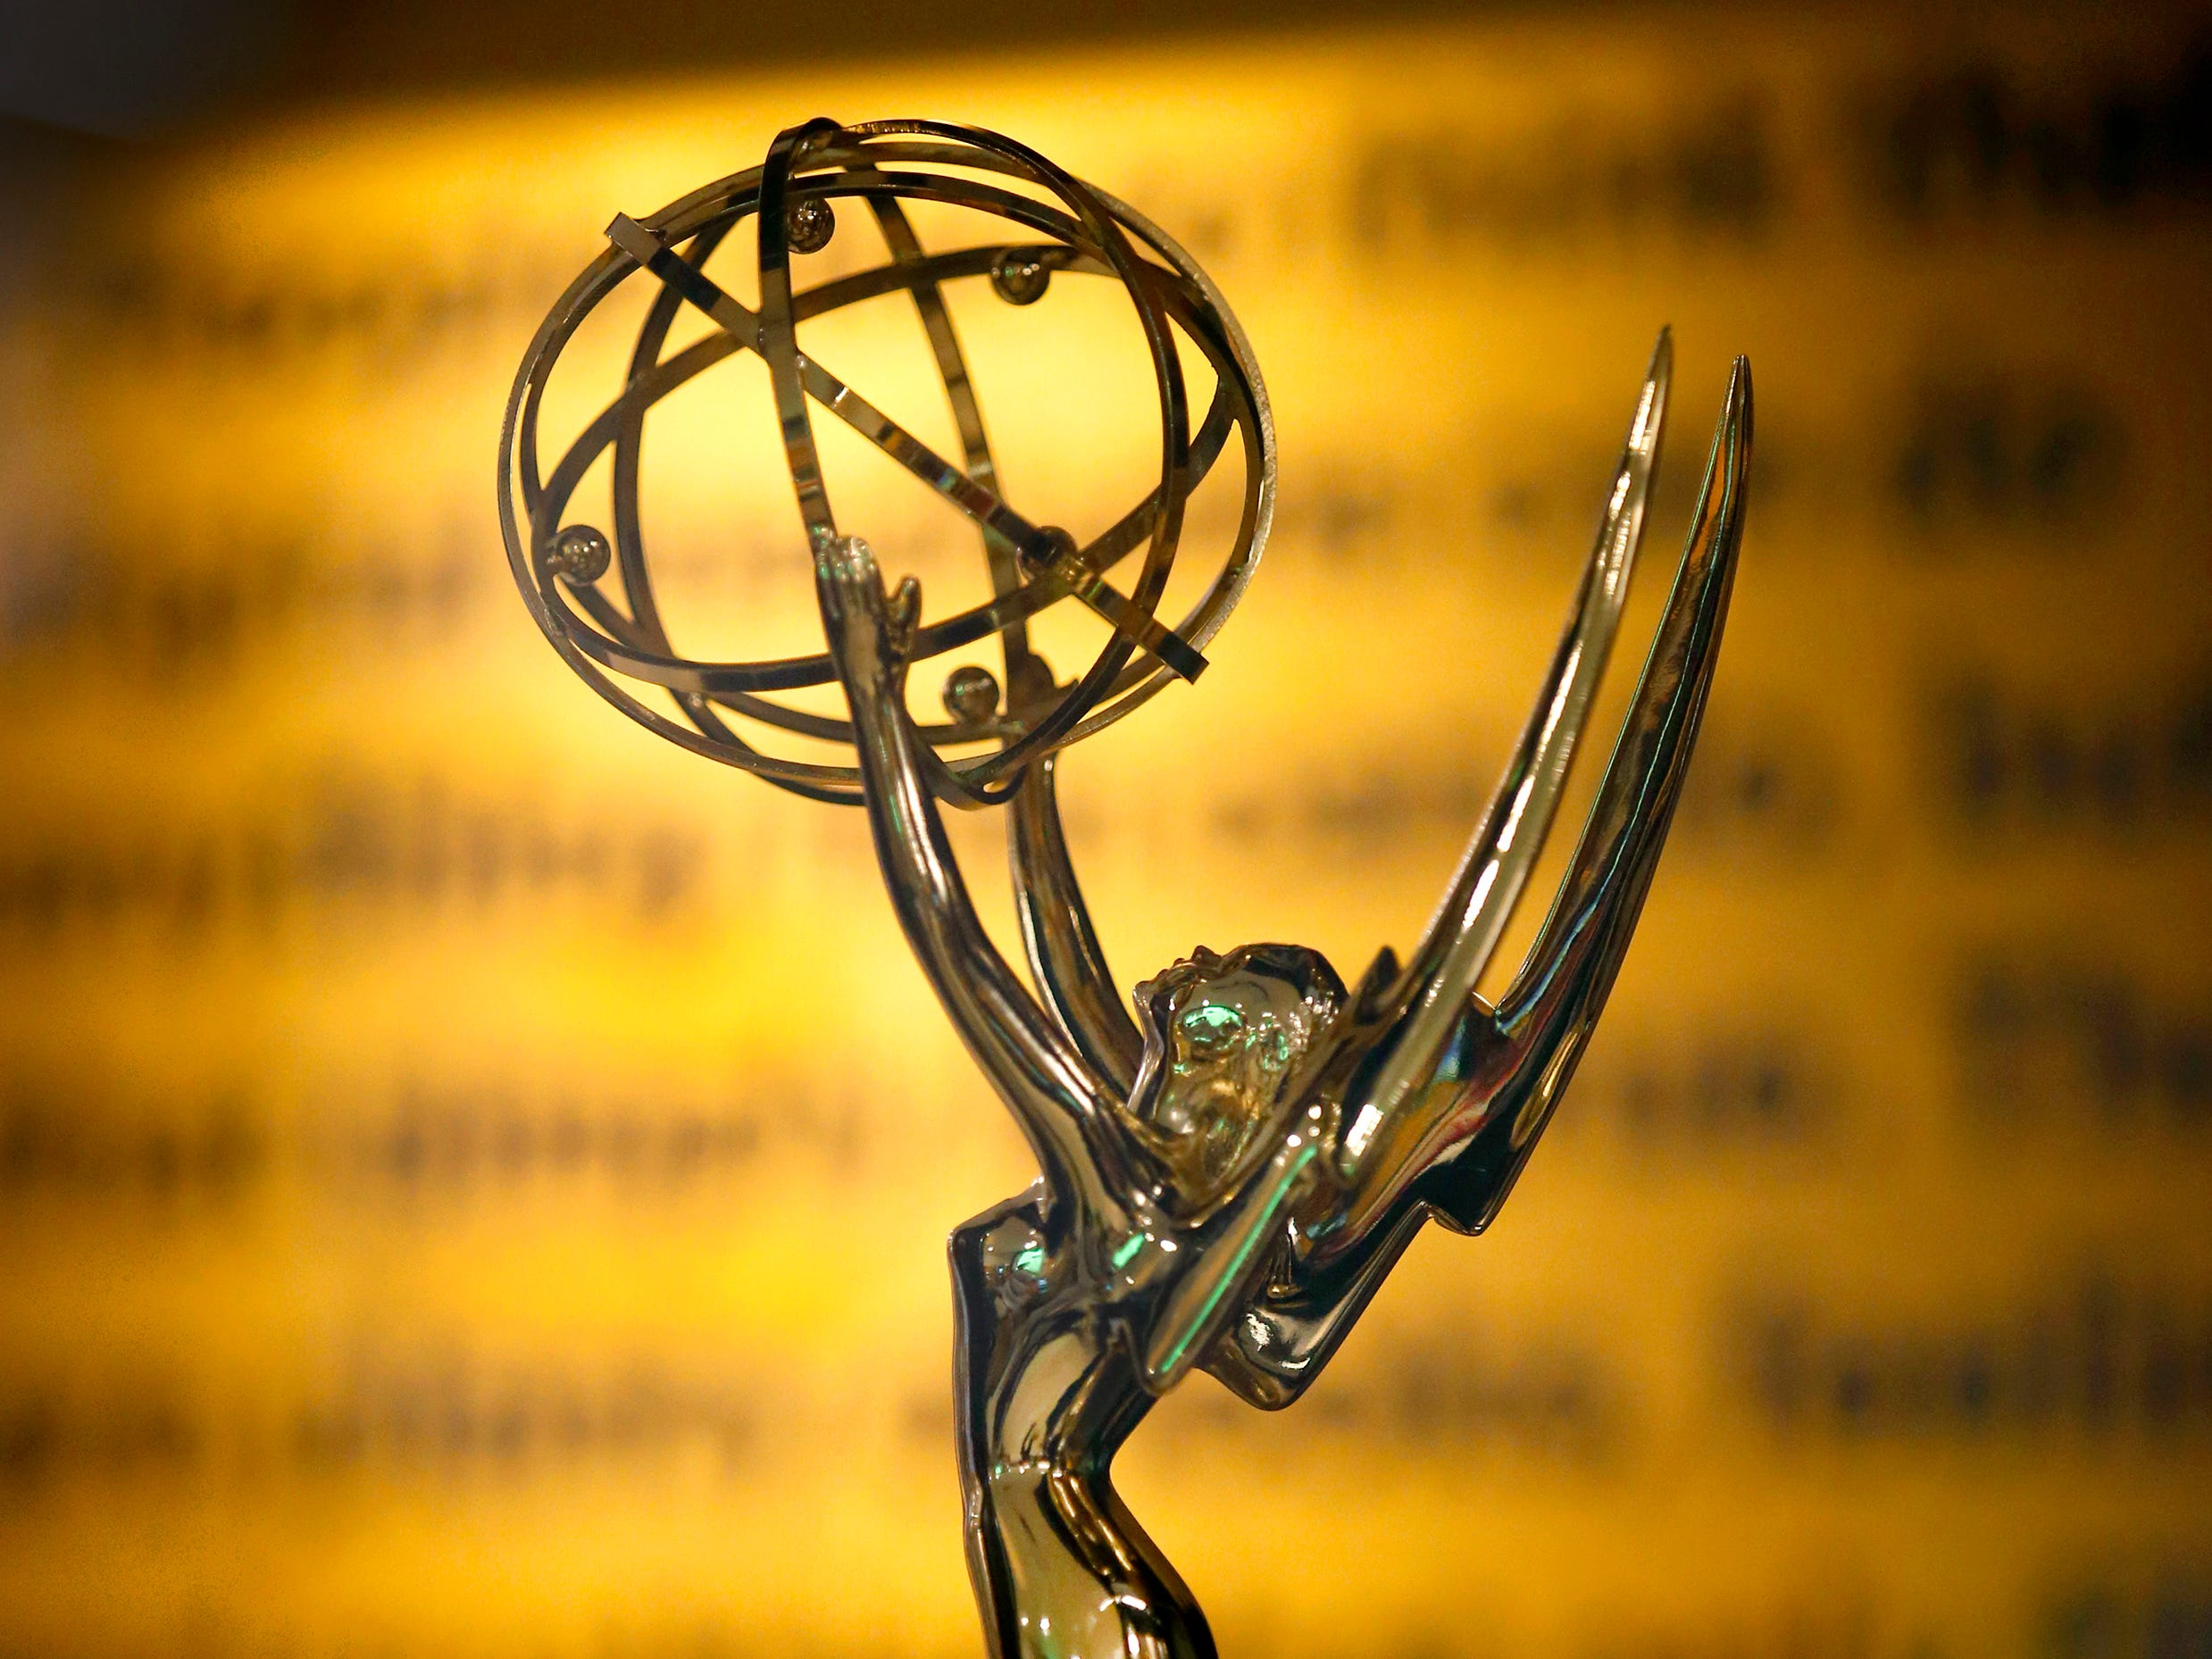 One of Kodak's Emmy Awards on display at the Kodak Visitor Center.